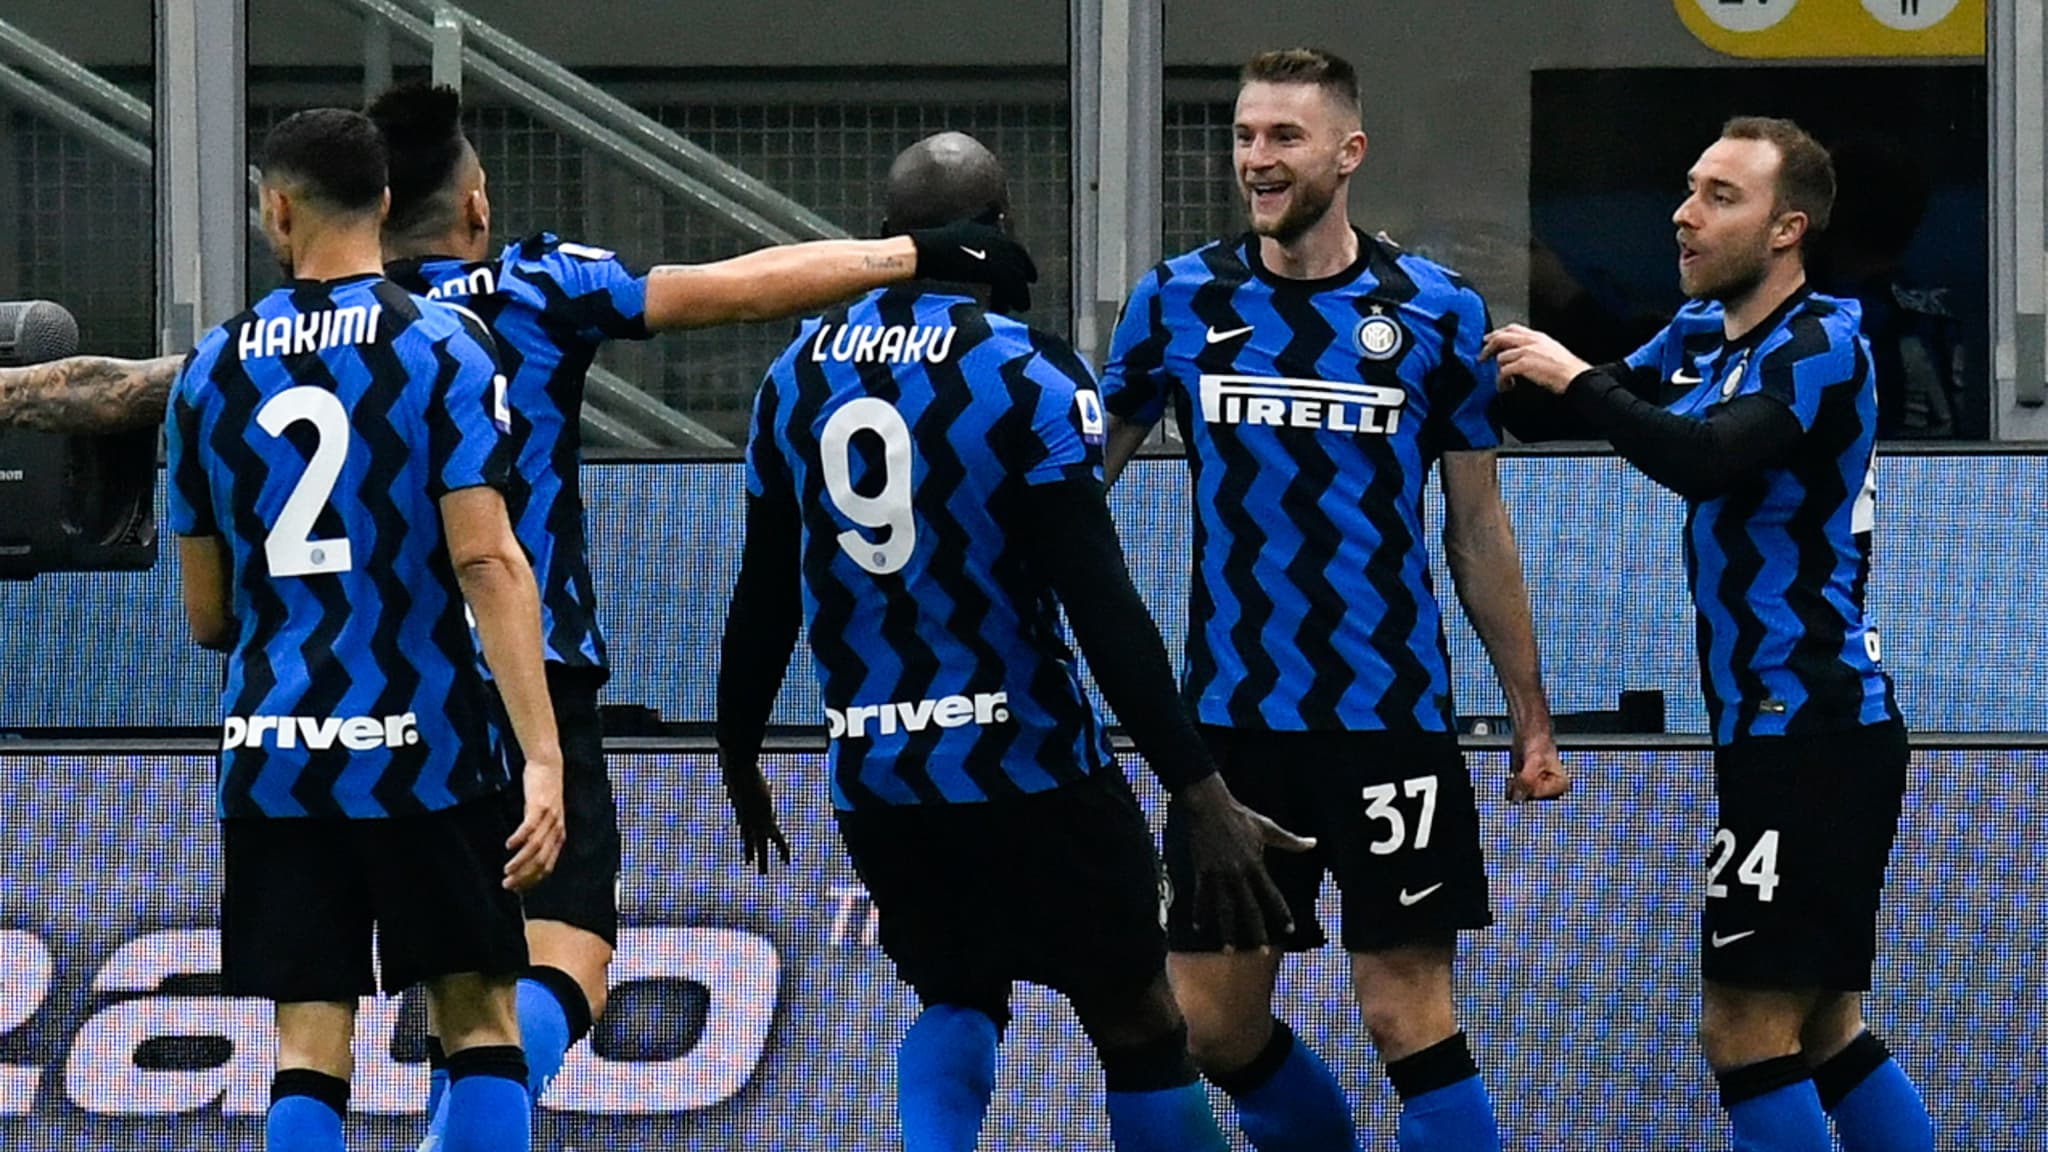 Inter Milan unveil patchwork jersey with new logo - World Today News